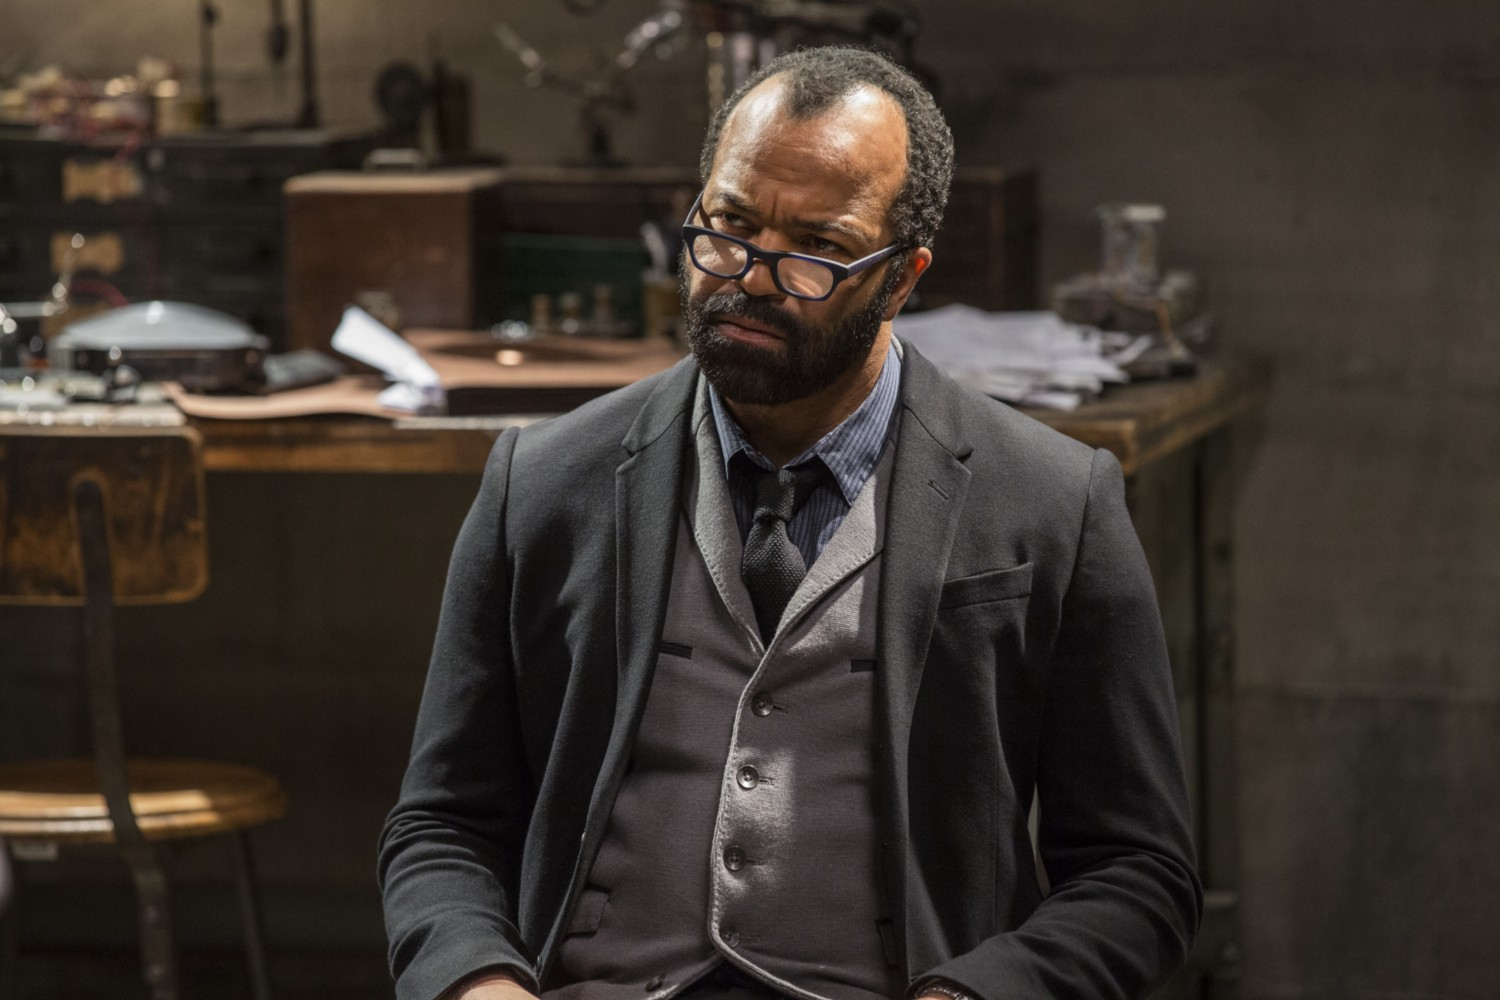 bernard-westworld-episode-8